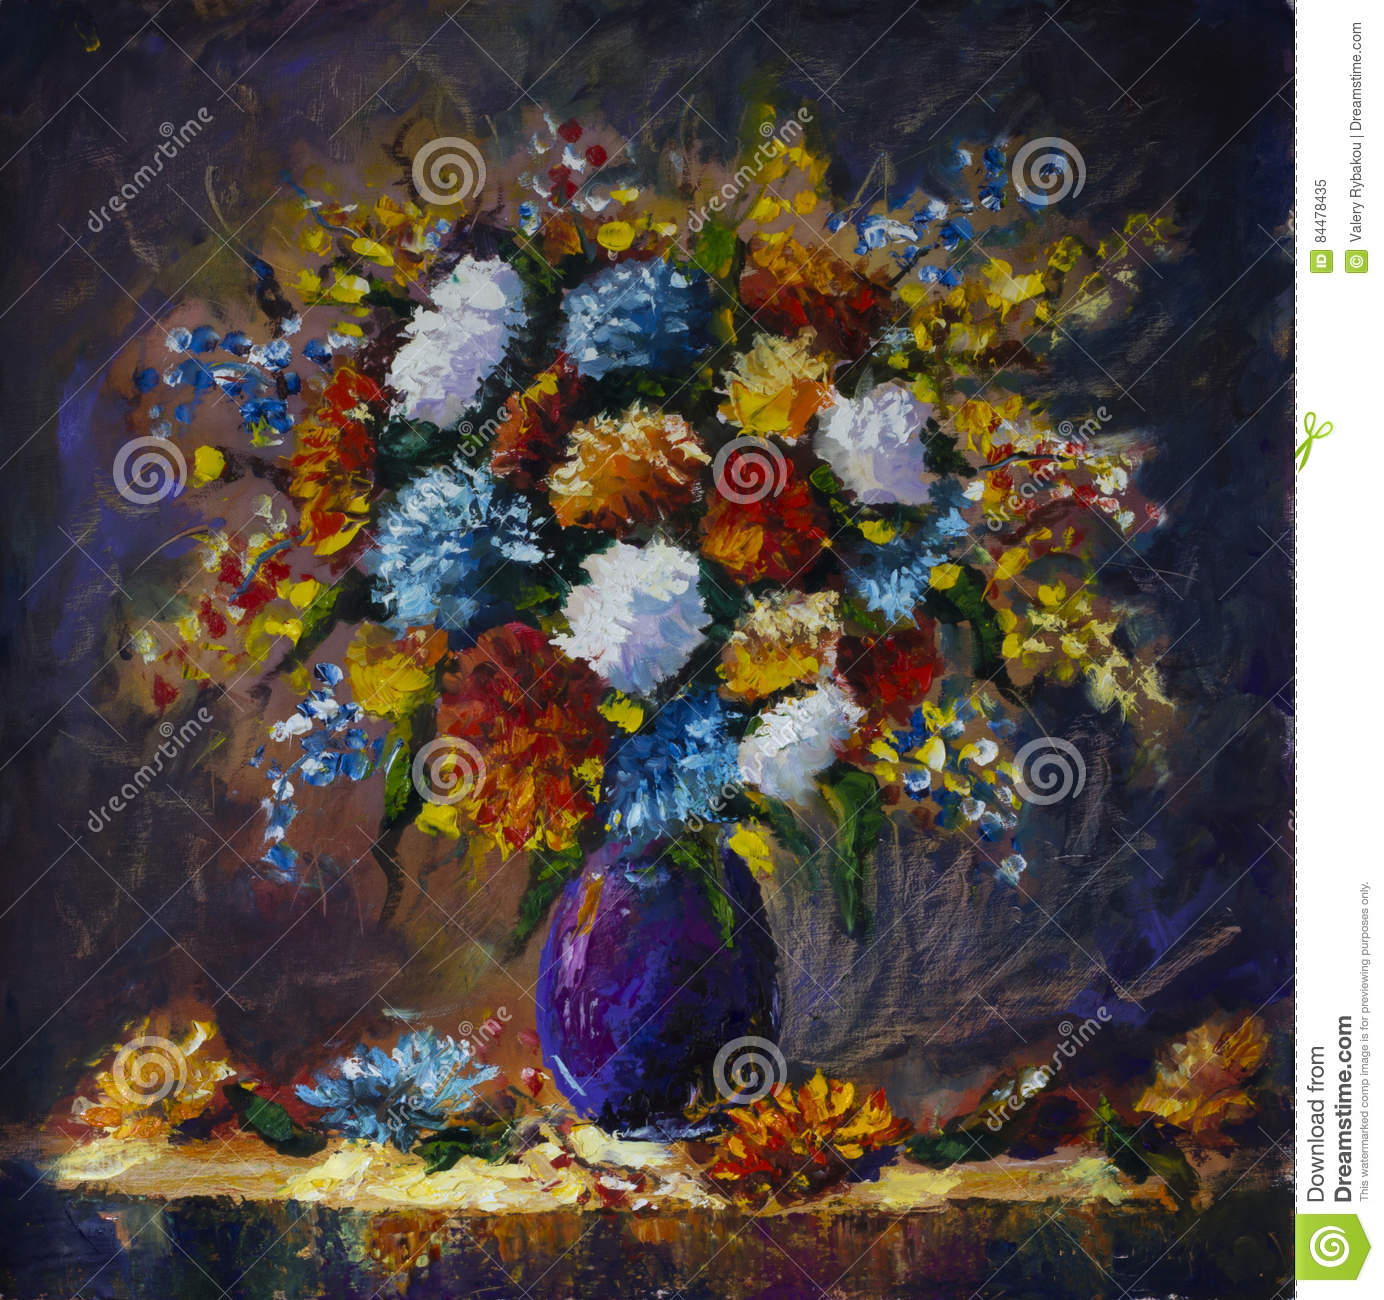 Bouquet Of Wild Flowers In A Vase Stock Illustration Illustration Of Wildflowers Design 84478435